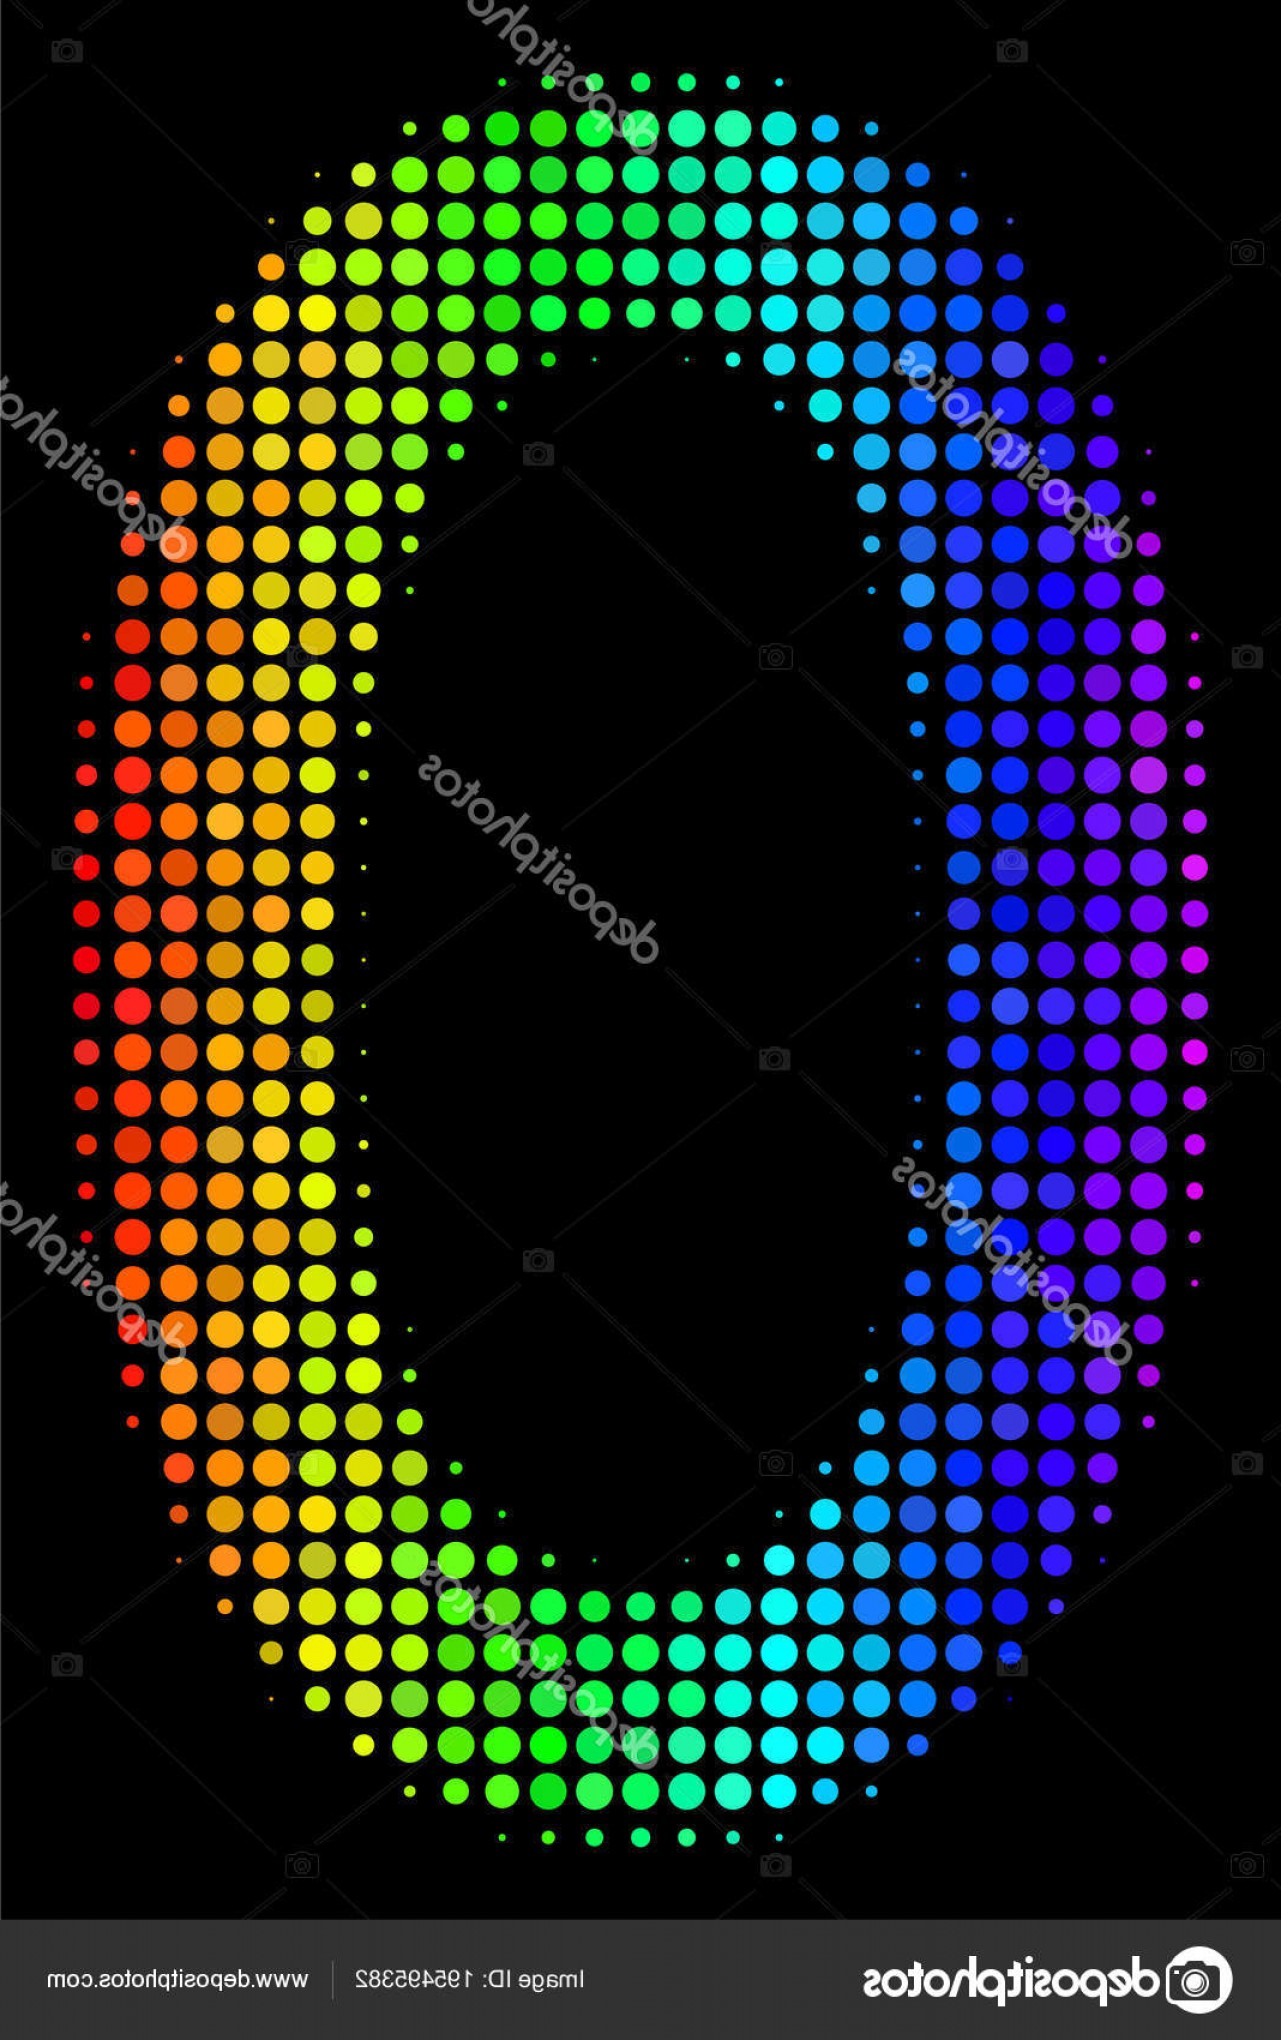 Null Vector Lighting: Stock Illustration Bright Dotted Zero Digit Icon